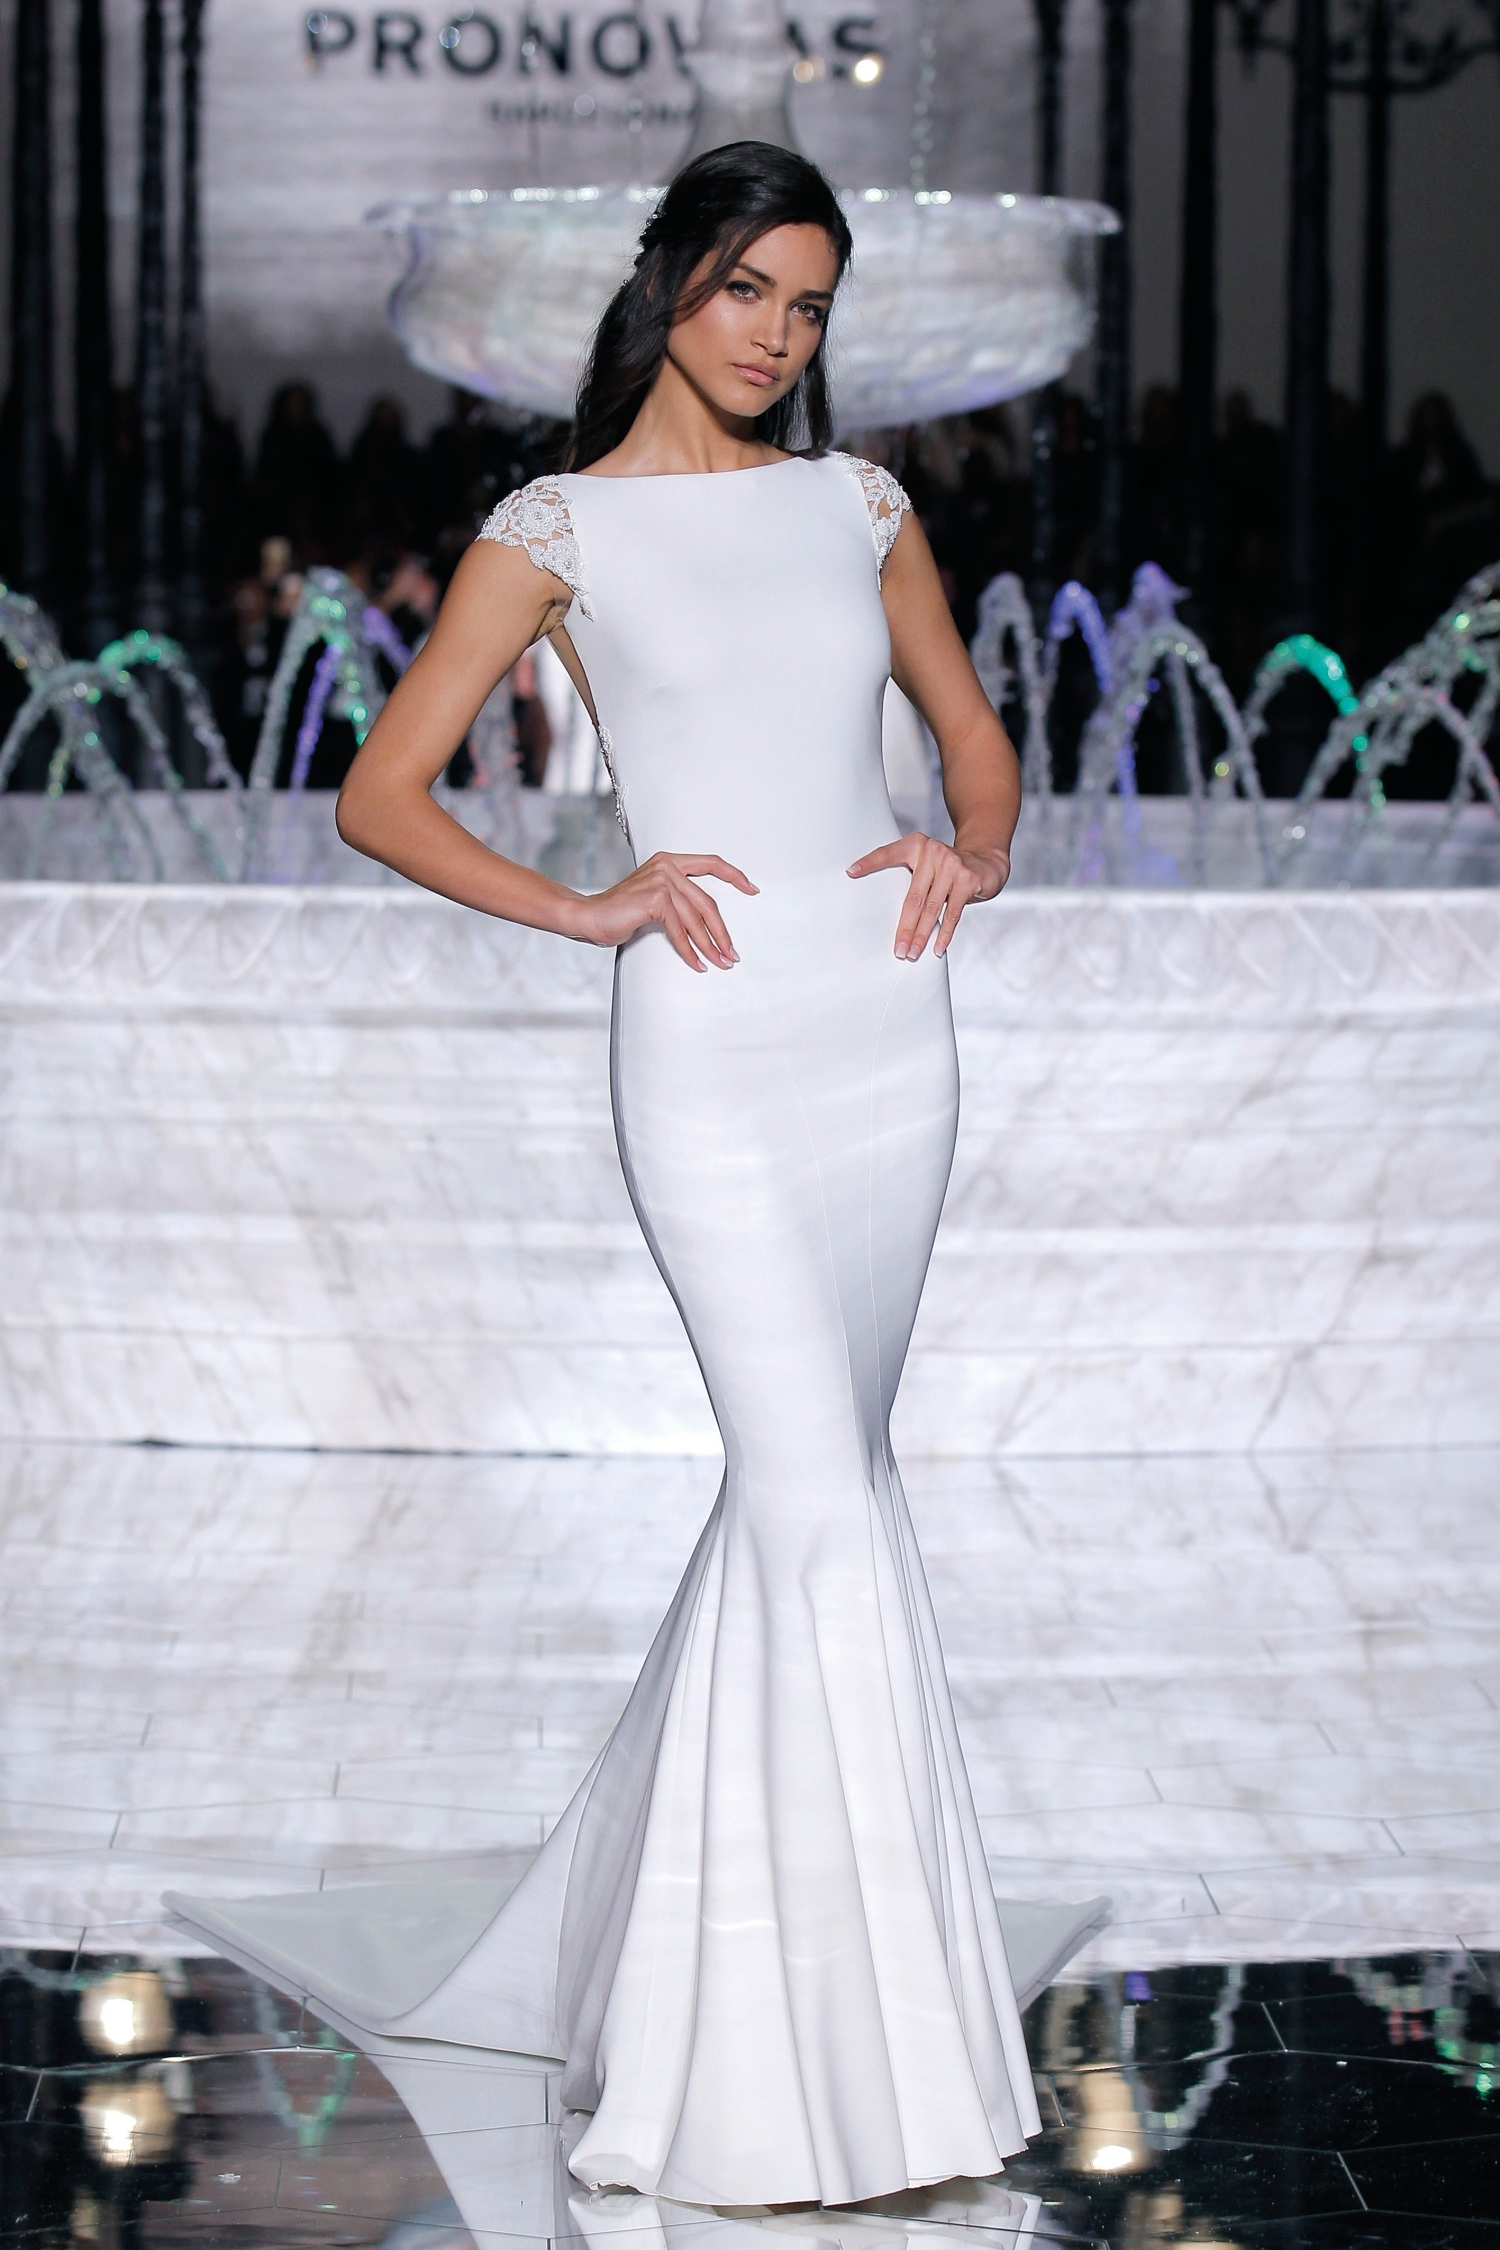 1-PRONOVIAS FASHION SHOW_Rosario